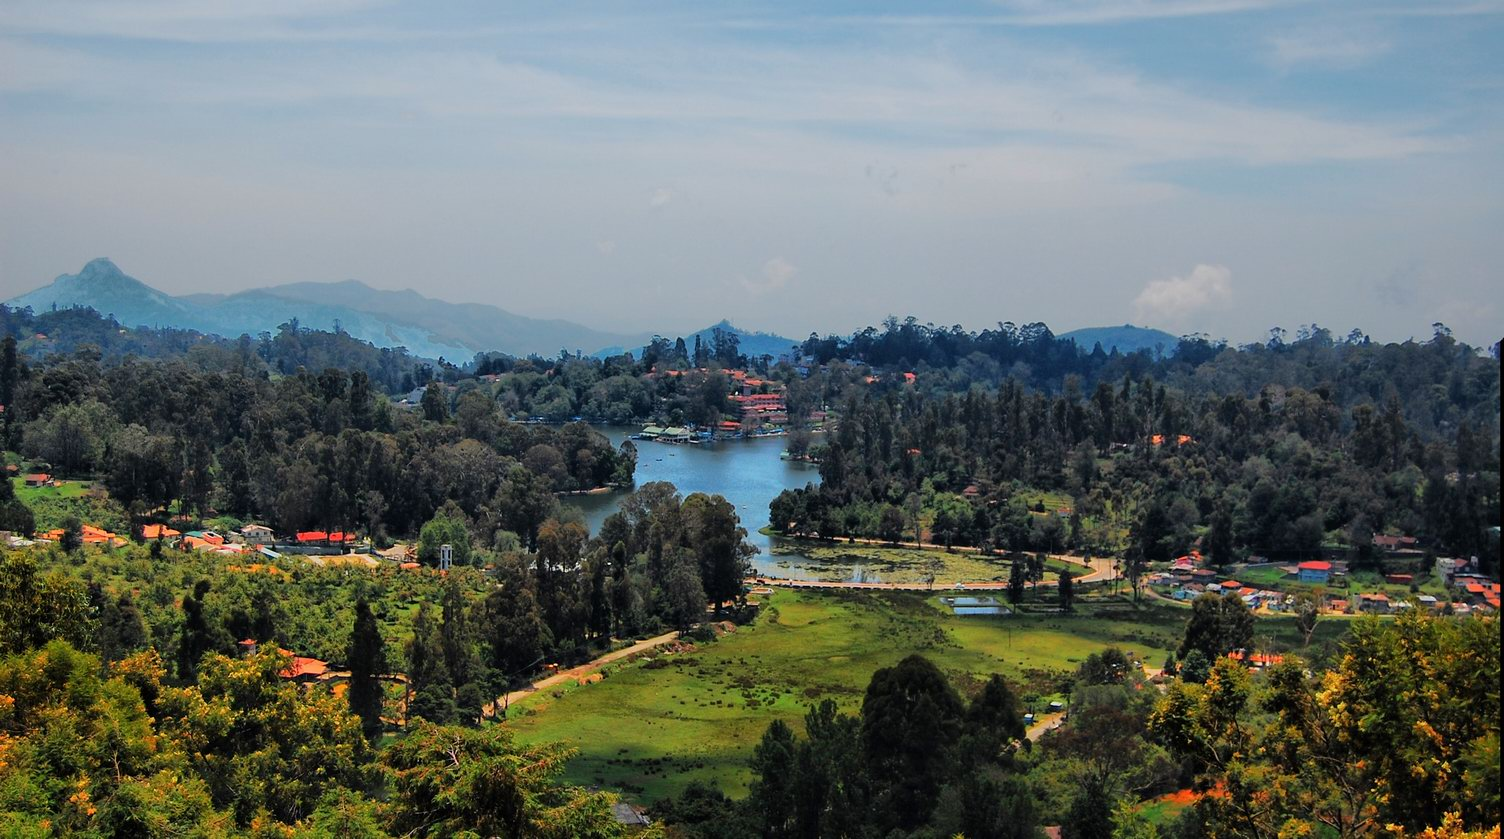 Indian Honeymoon Destination, Kodaikanal